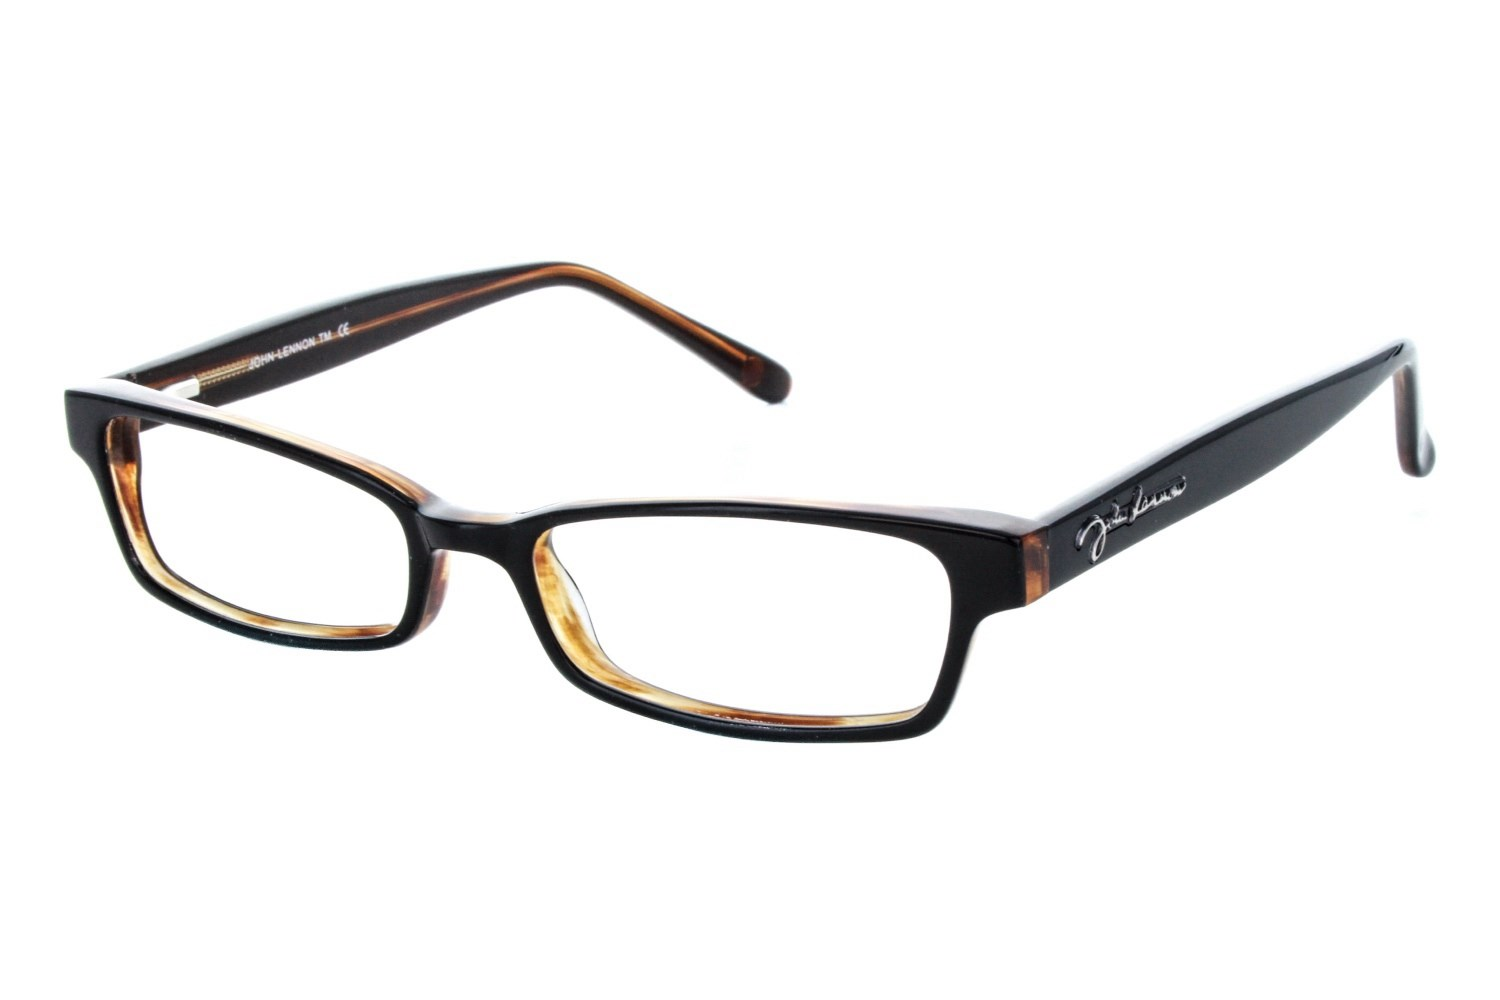 John Lennon JL 502 Prescription Eyeglasses Frames